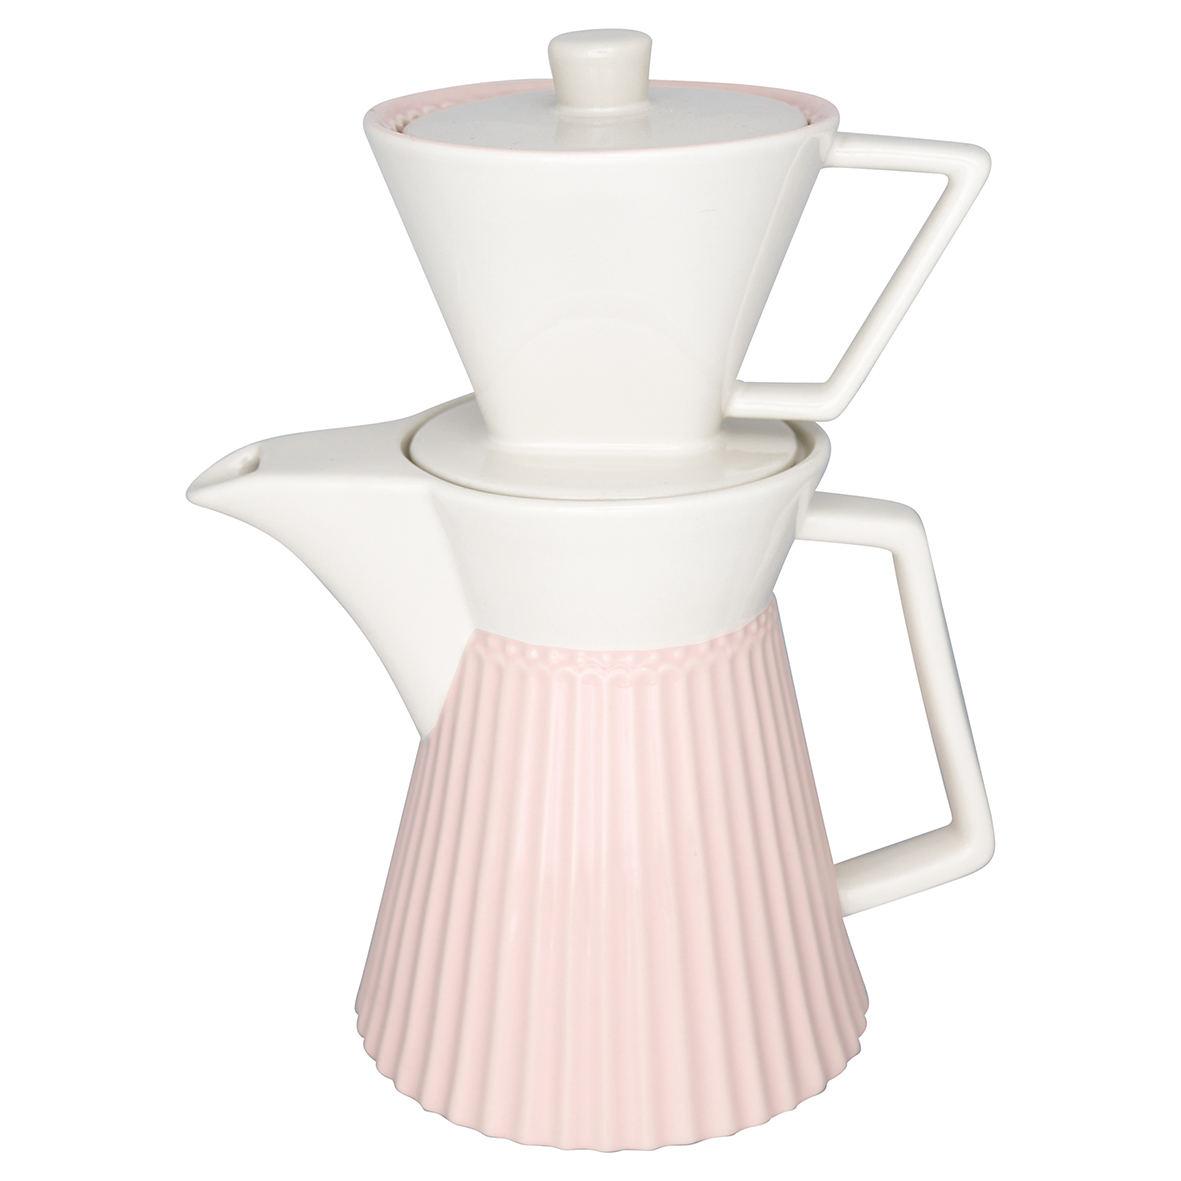 Kaffeekanne mit Kaffeefilter - Coffee pot - Alice Pale Pink- Greengate